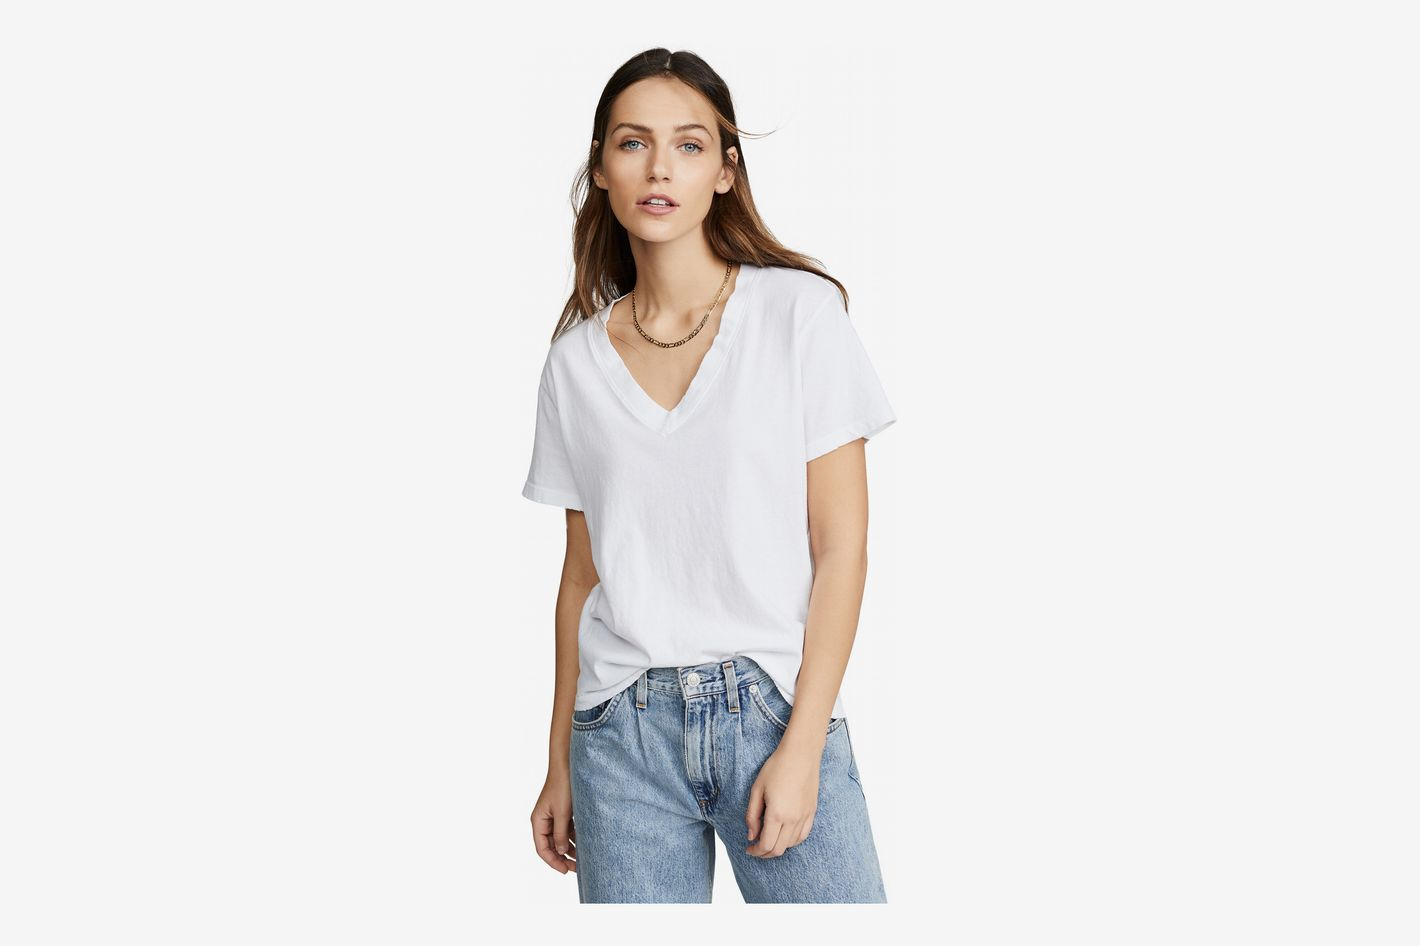 73c405cb6f64 The 17 Best White T-shirts for Women 2019